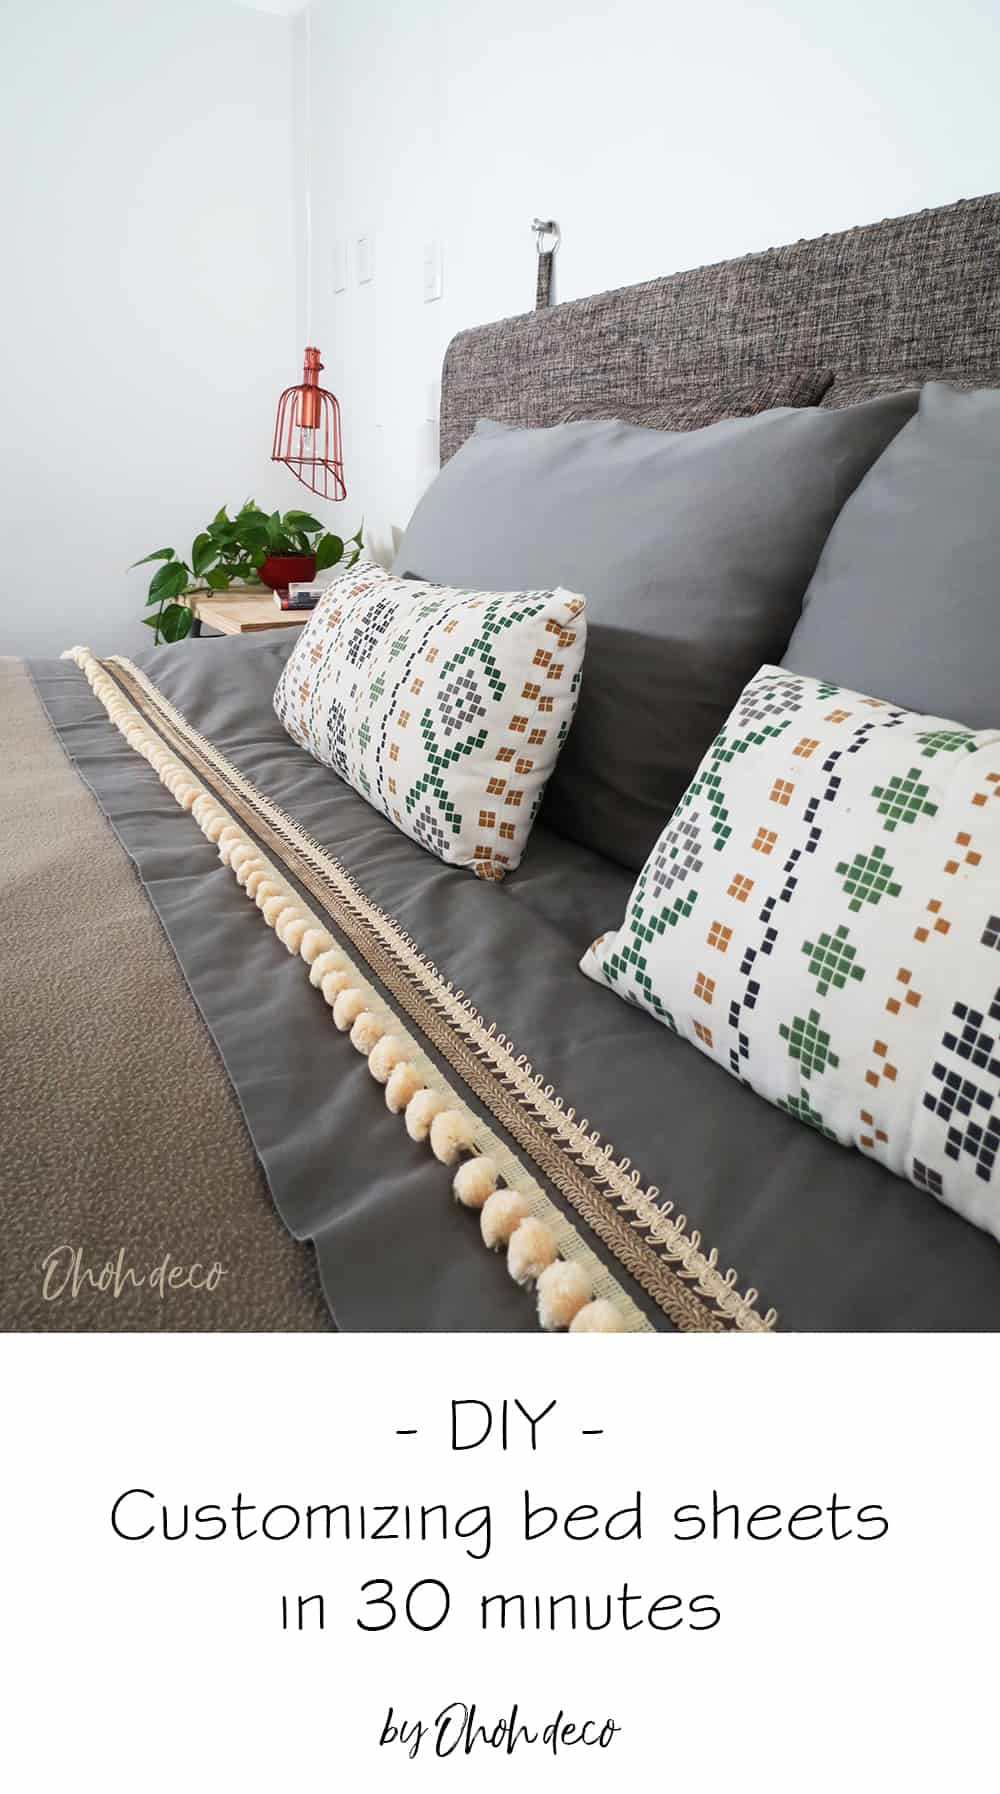 diy customized bed sheets